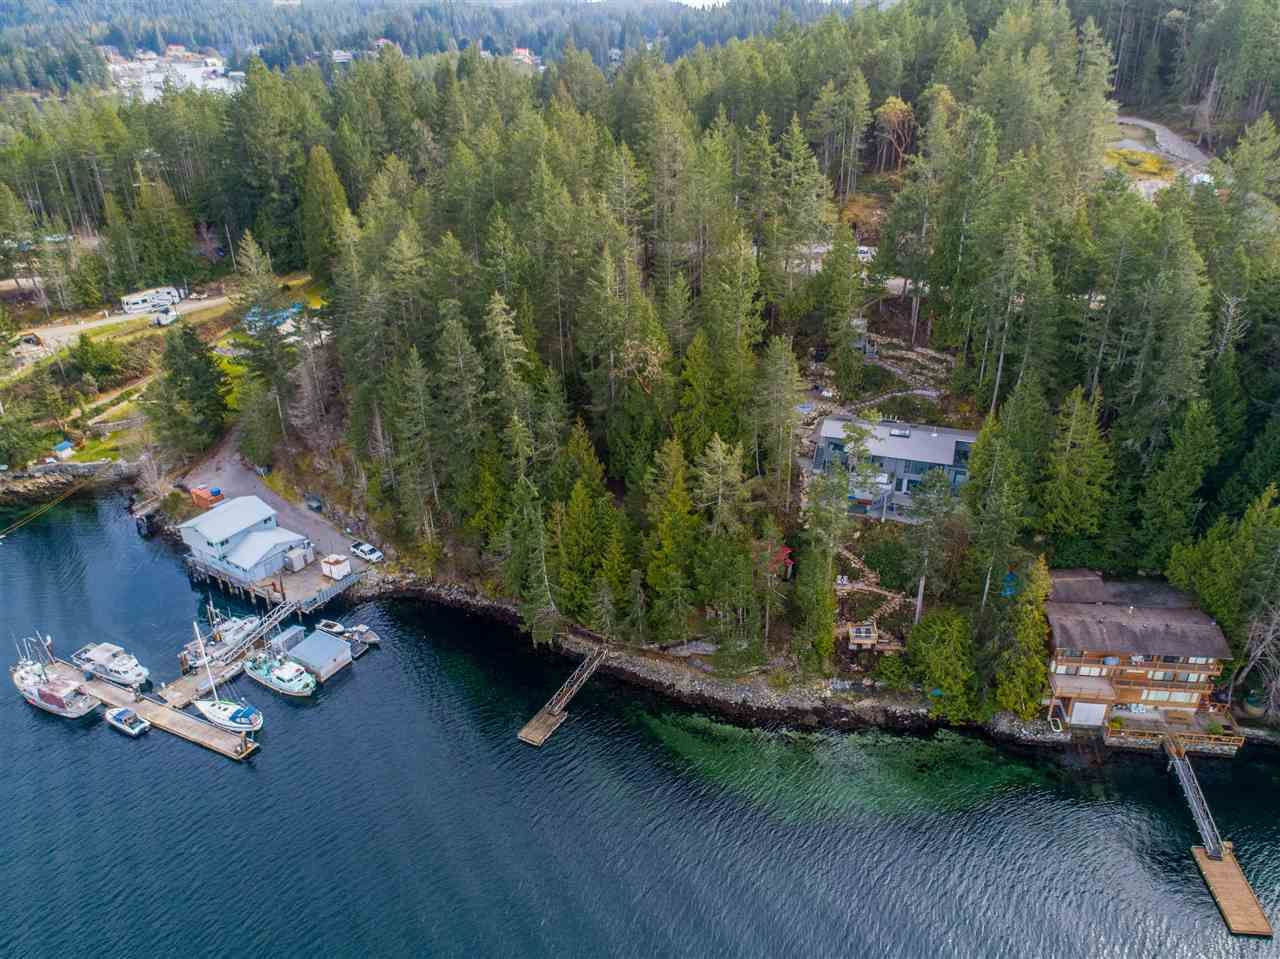 Photo 8: Photos: 4216 FRANCIS PENINSULA Road in Madeira Park: Pender Harbour Egmont House for sale (Sunshine Coast)  : MLS®# R2549311